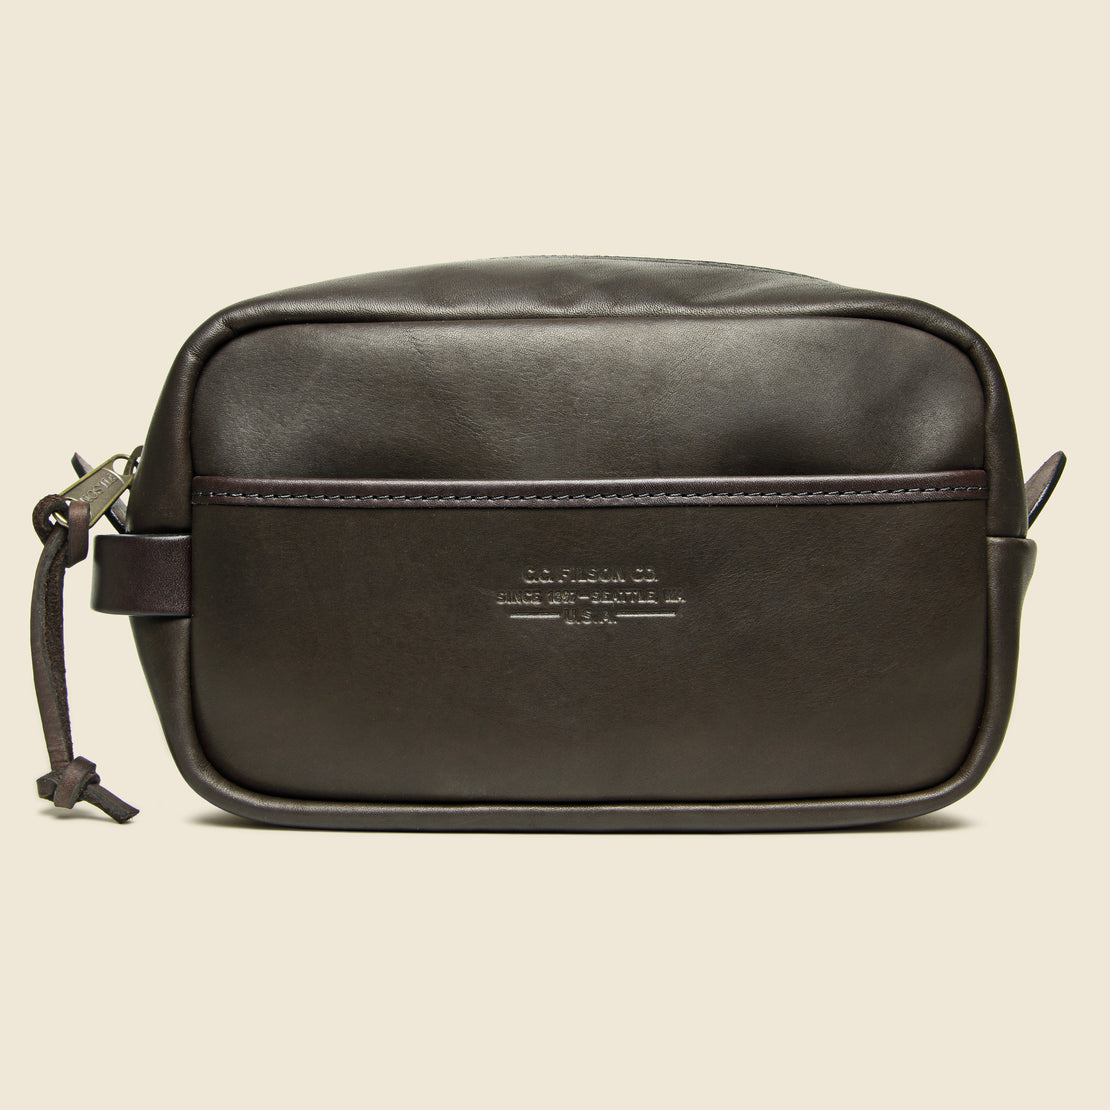 Filson Weatherproof Leather Travel Kit - Sierra Brown